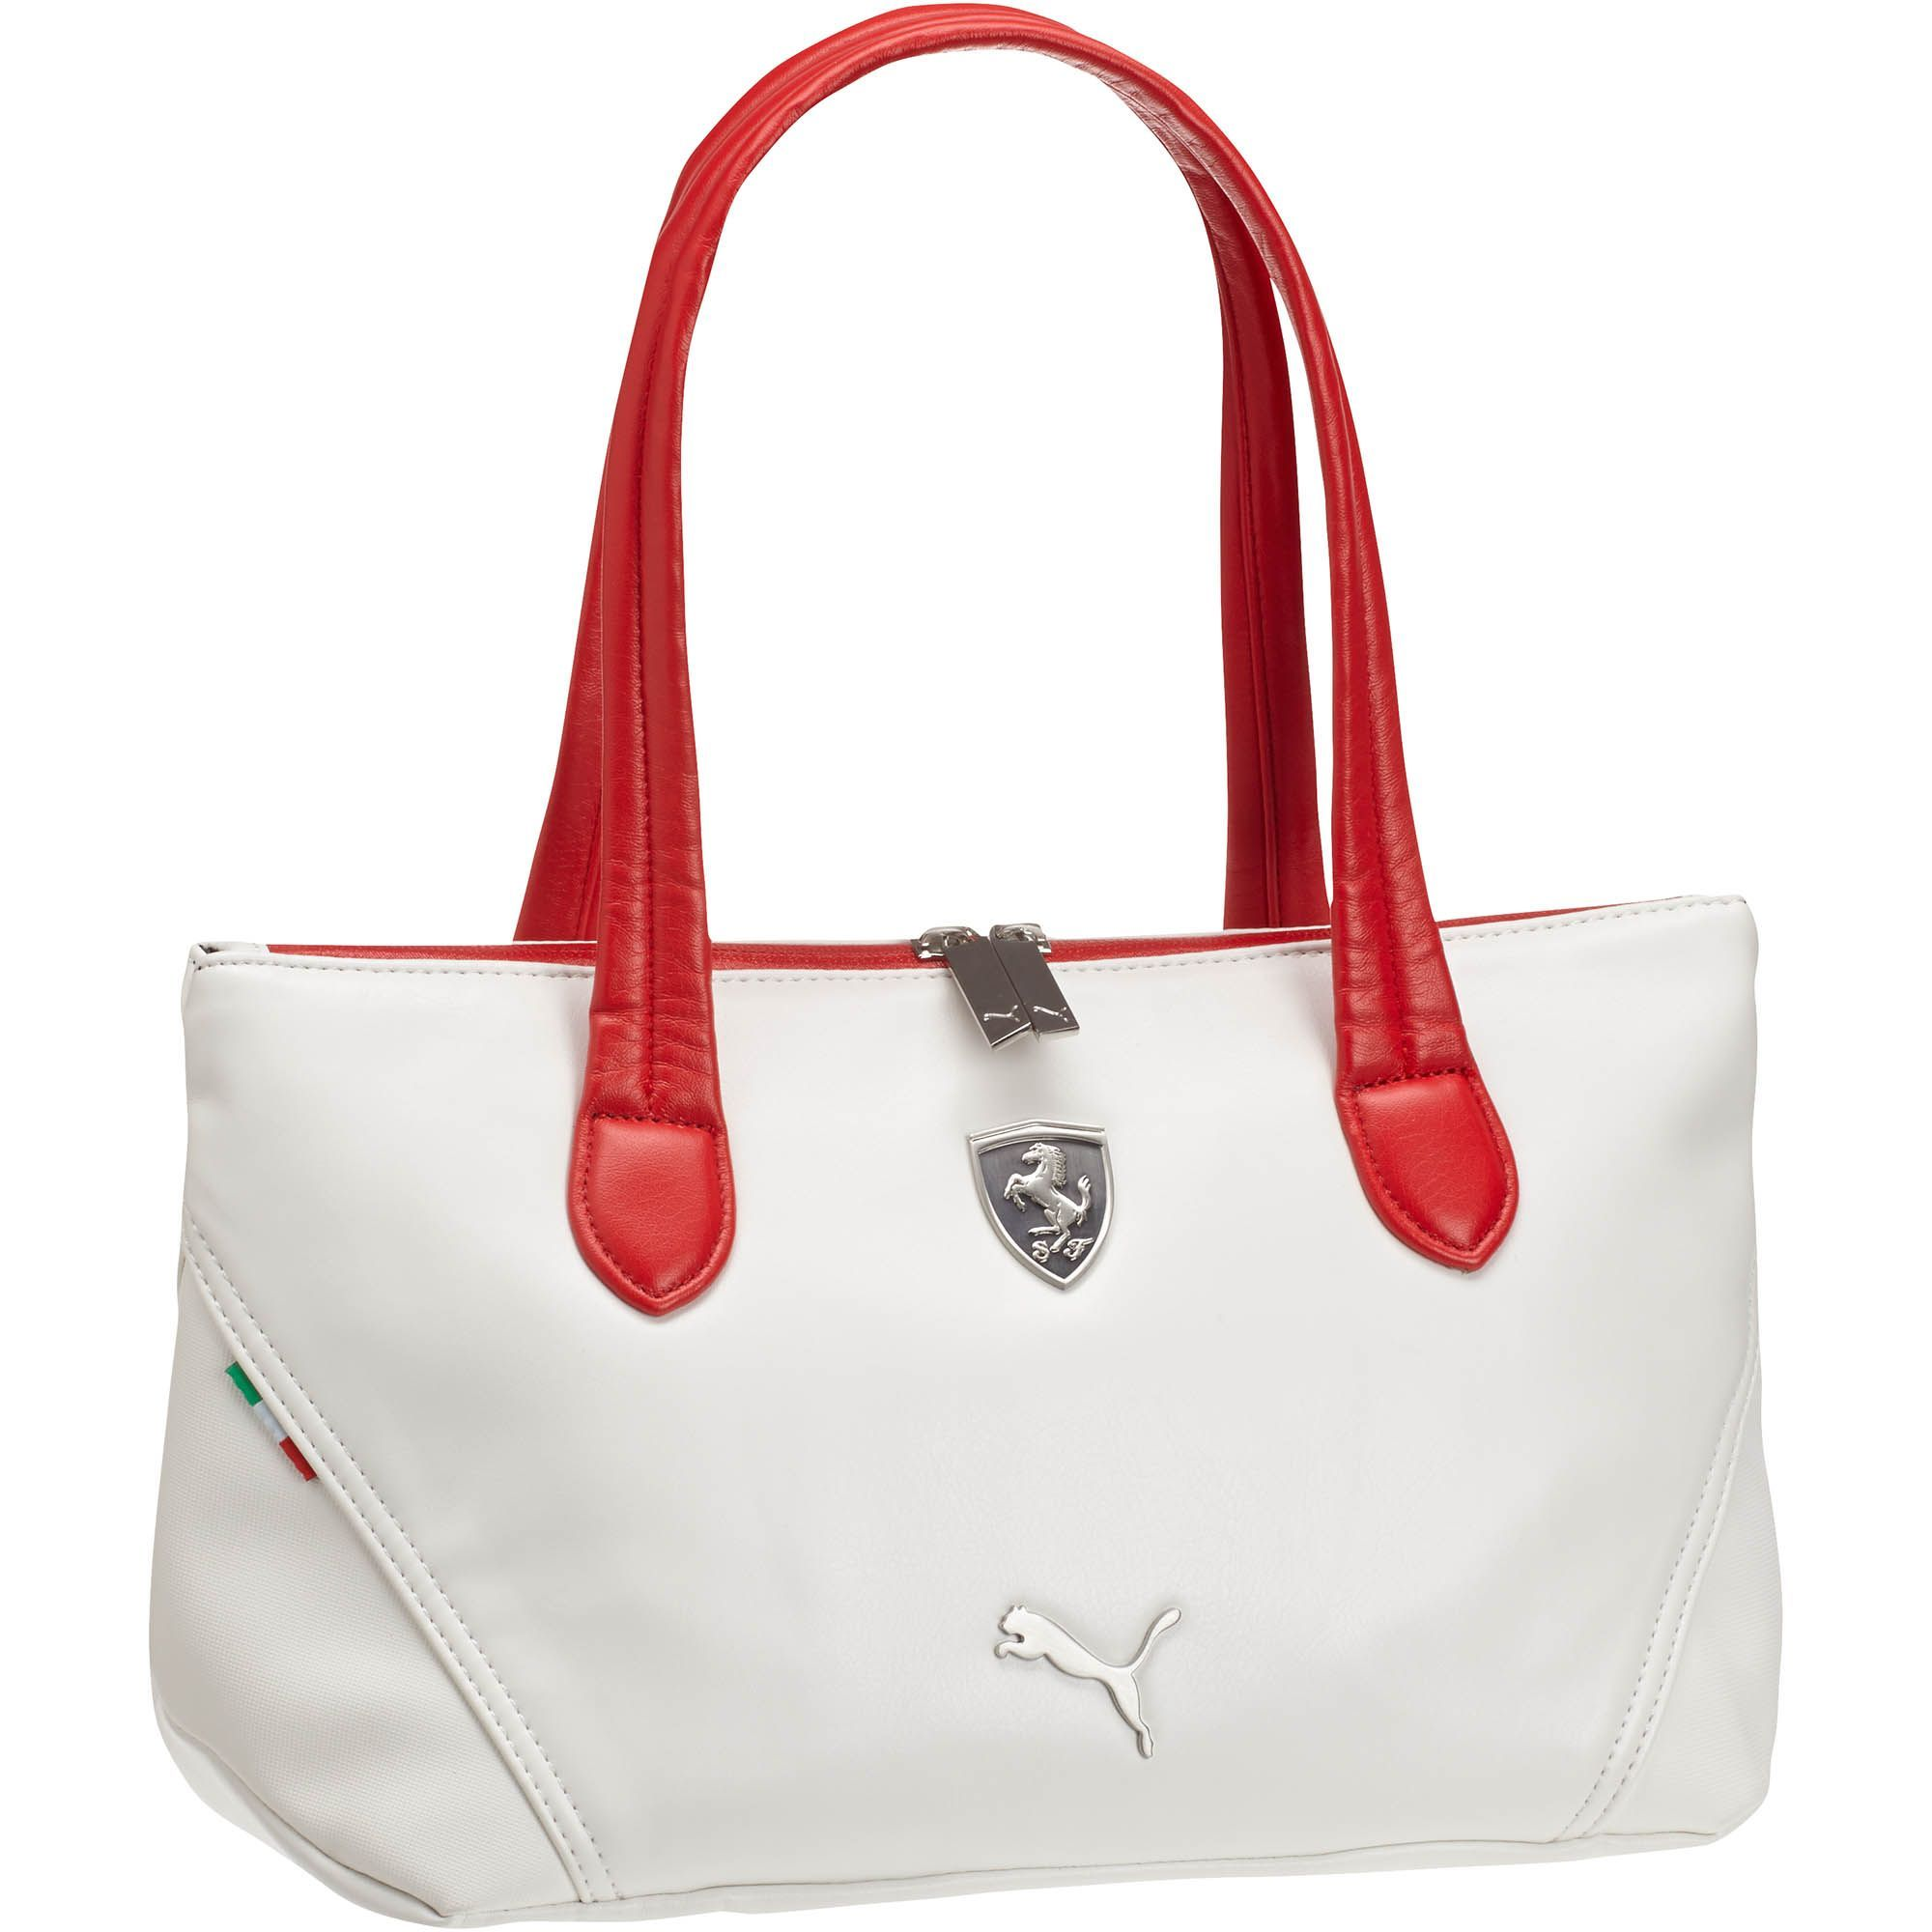 d554d864c70 PUMA Ferrari Handbag   - from the official Puma® Online Store ...